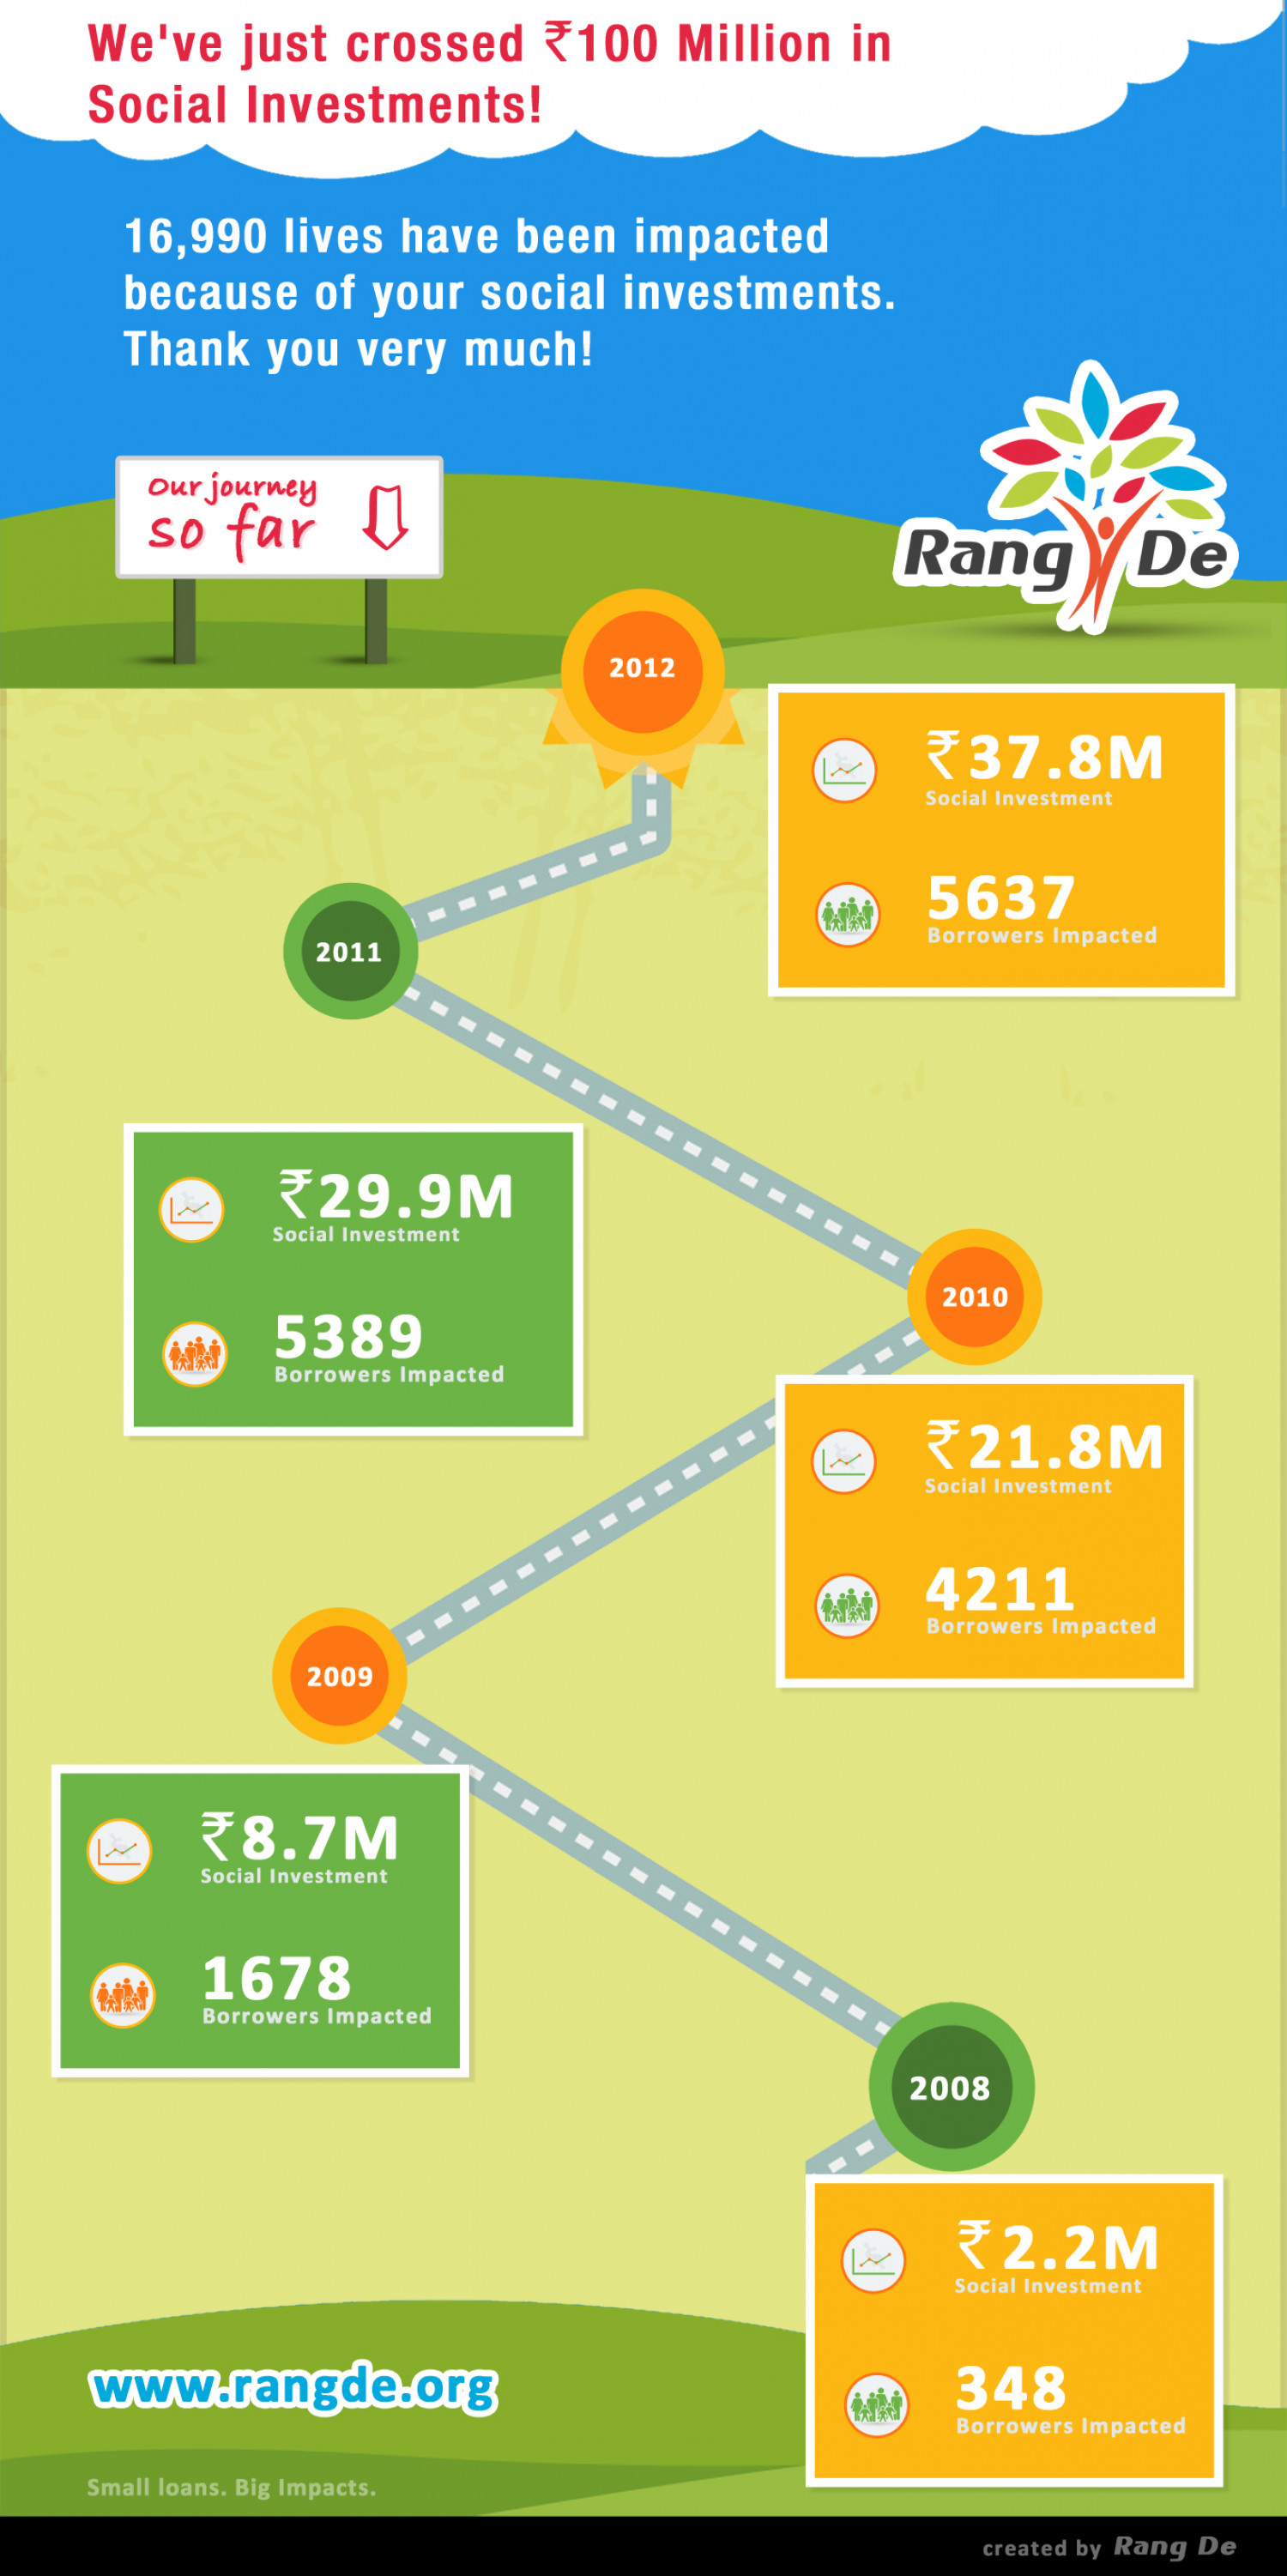 Rang De Social Investments! Infographic